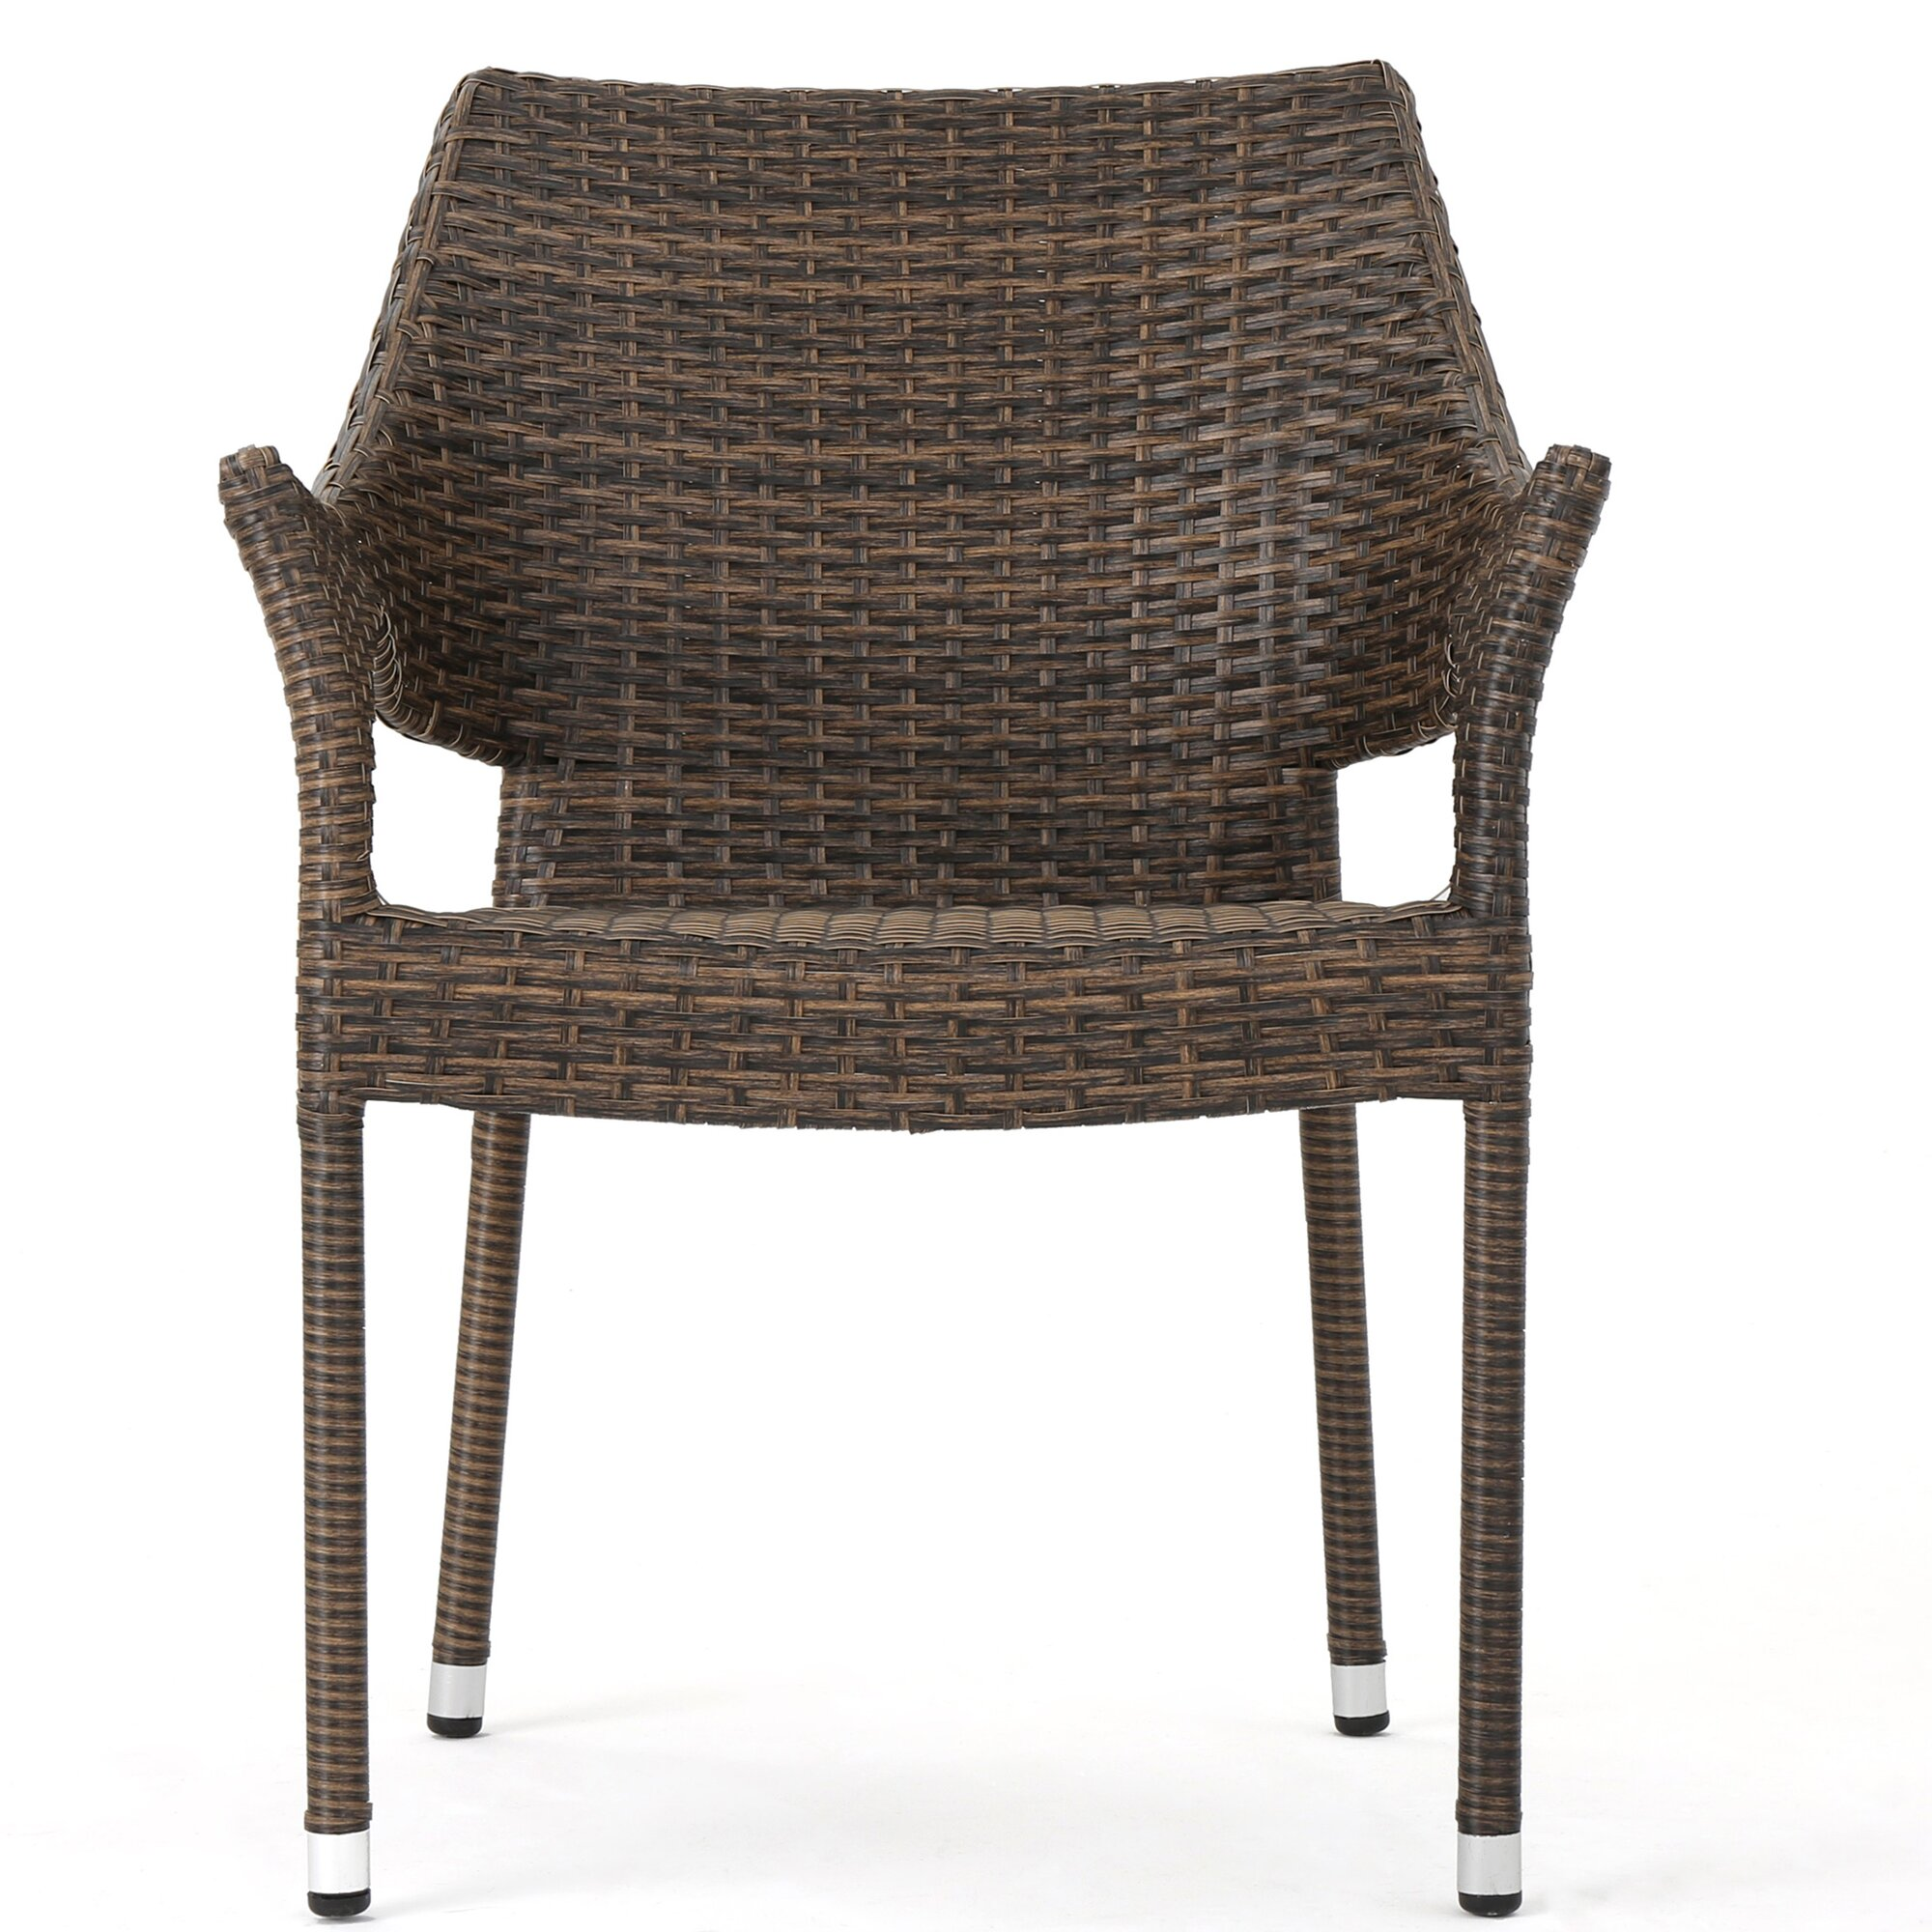 Wade Logan Abby Outdoor Wicker Stacking Dining Arm Chair